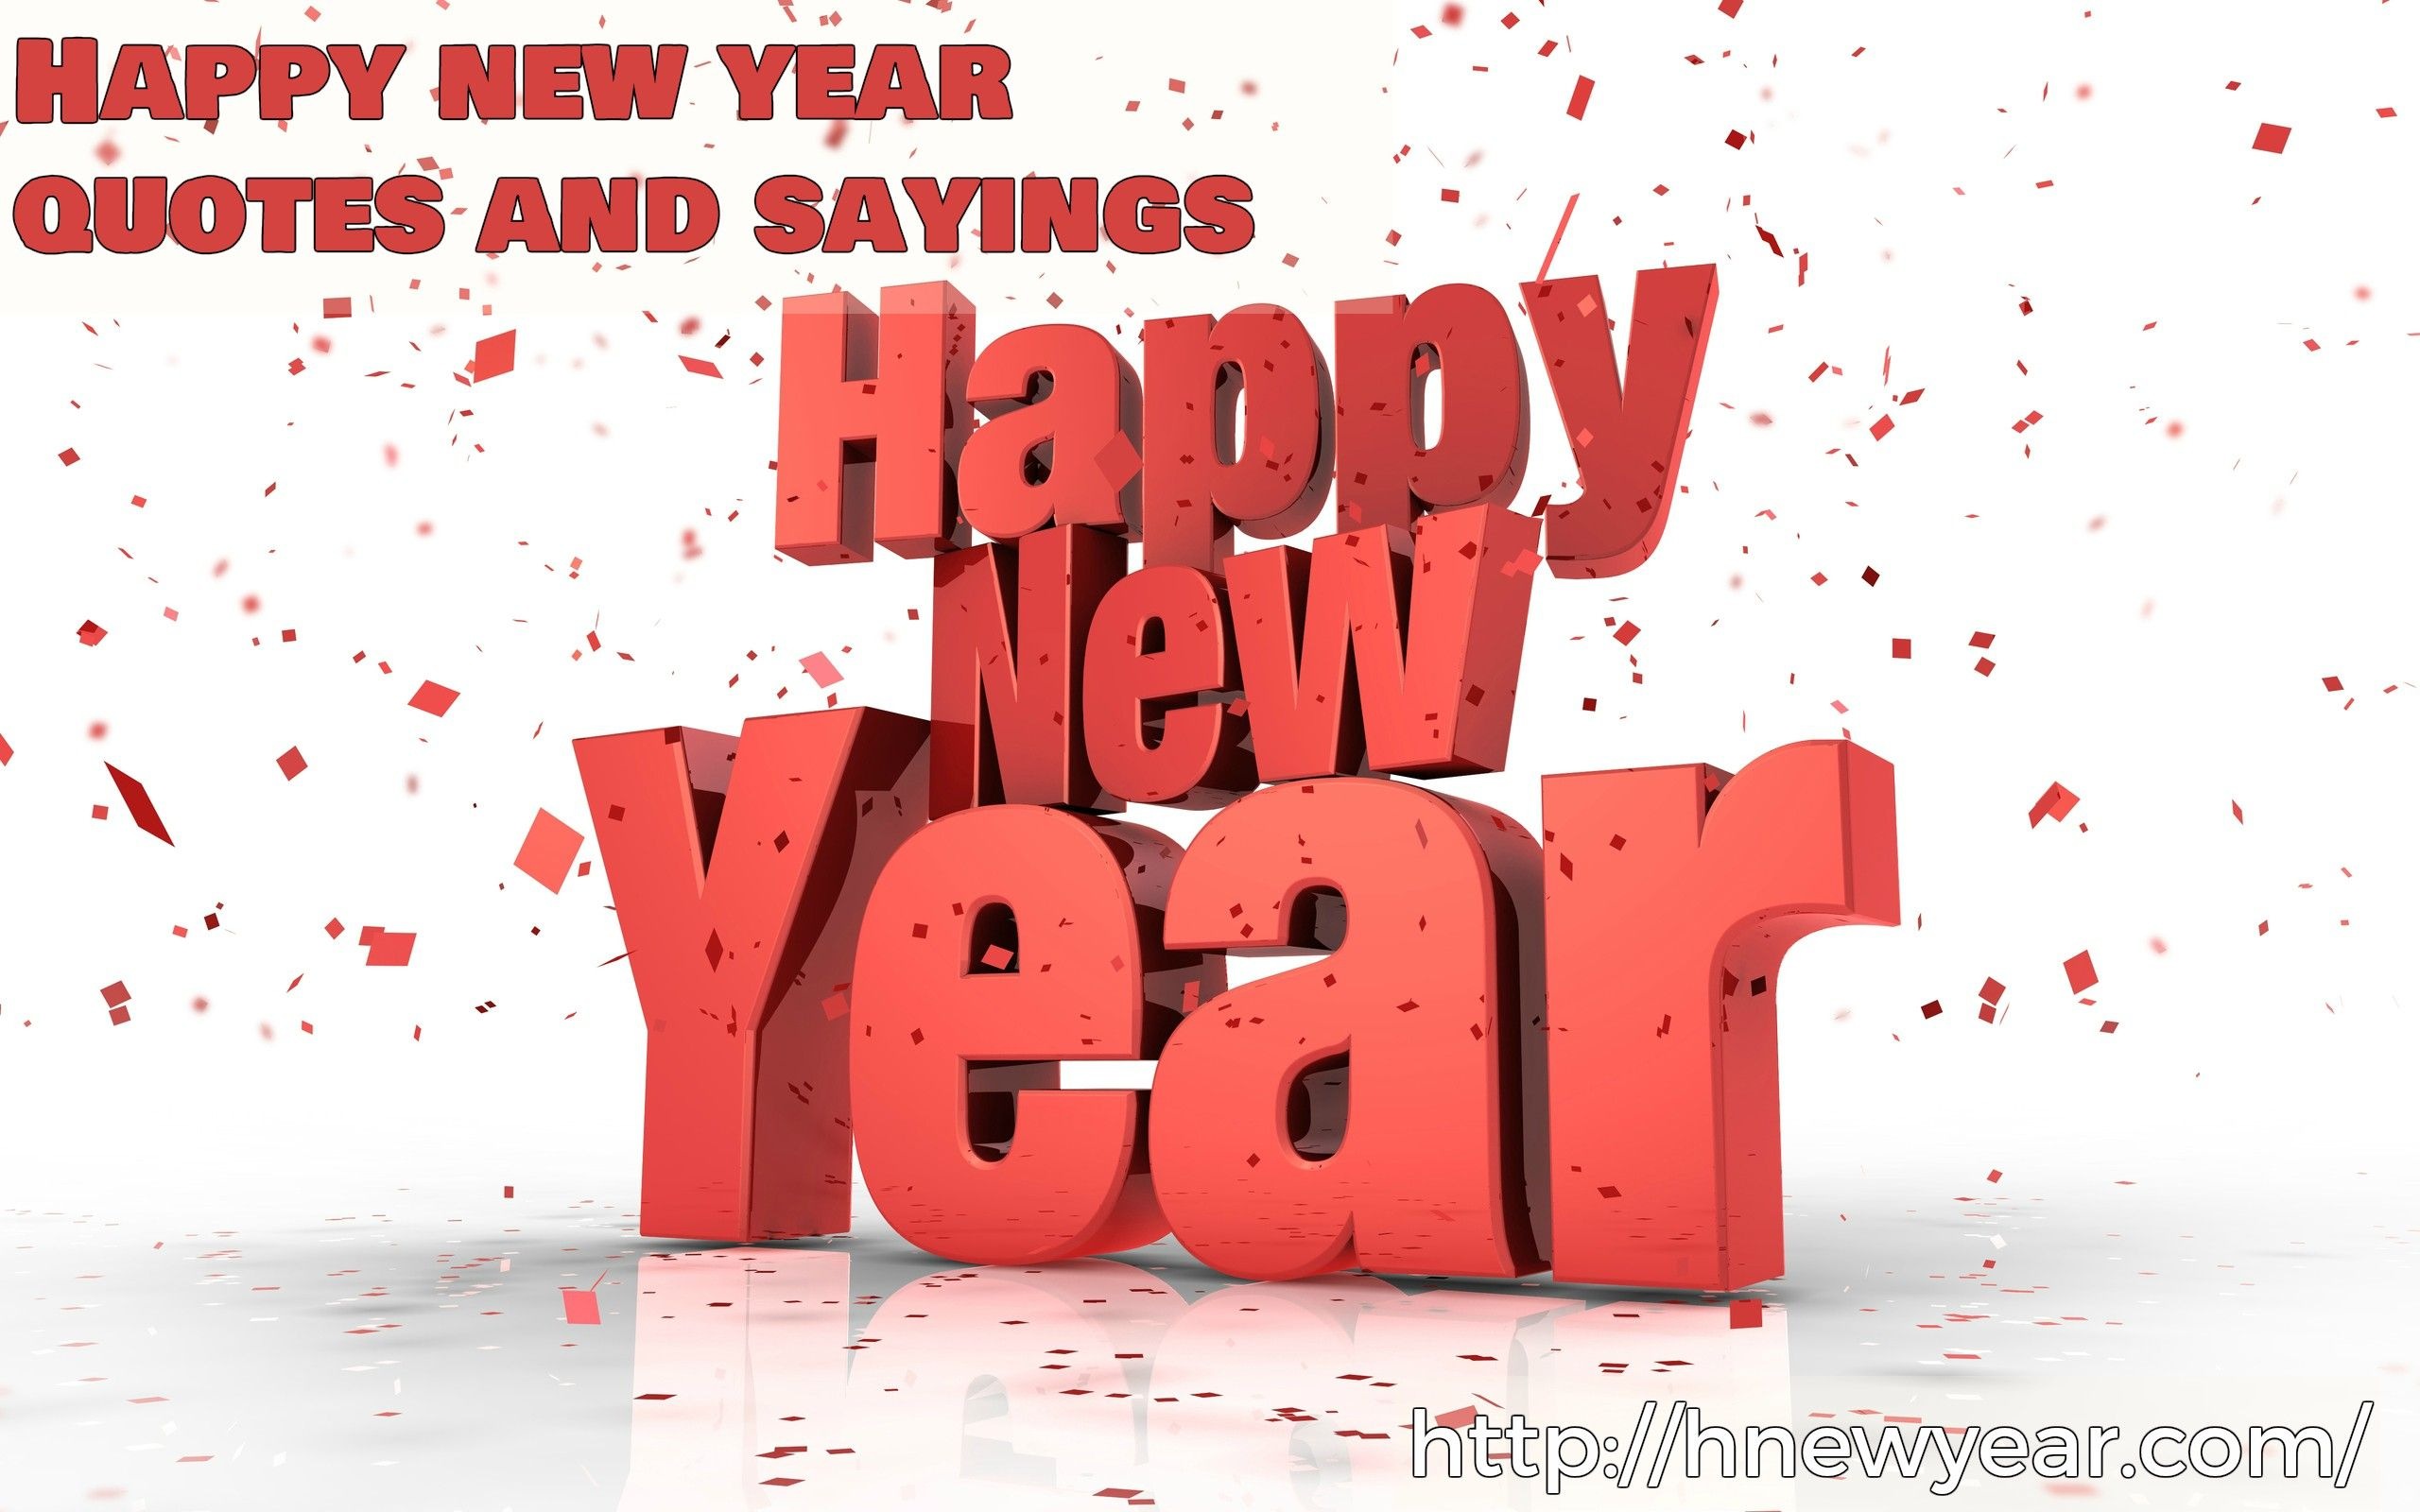 Happy new year 2017 quotes and sayings are sensible words of great happy new year 2017 quotes and sayings are sensible words of great persons happy new kristyandbryce Images